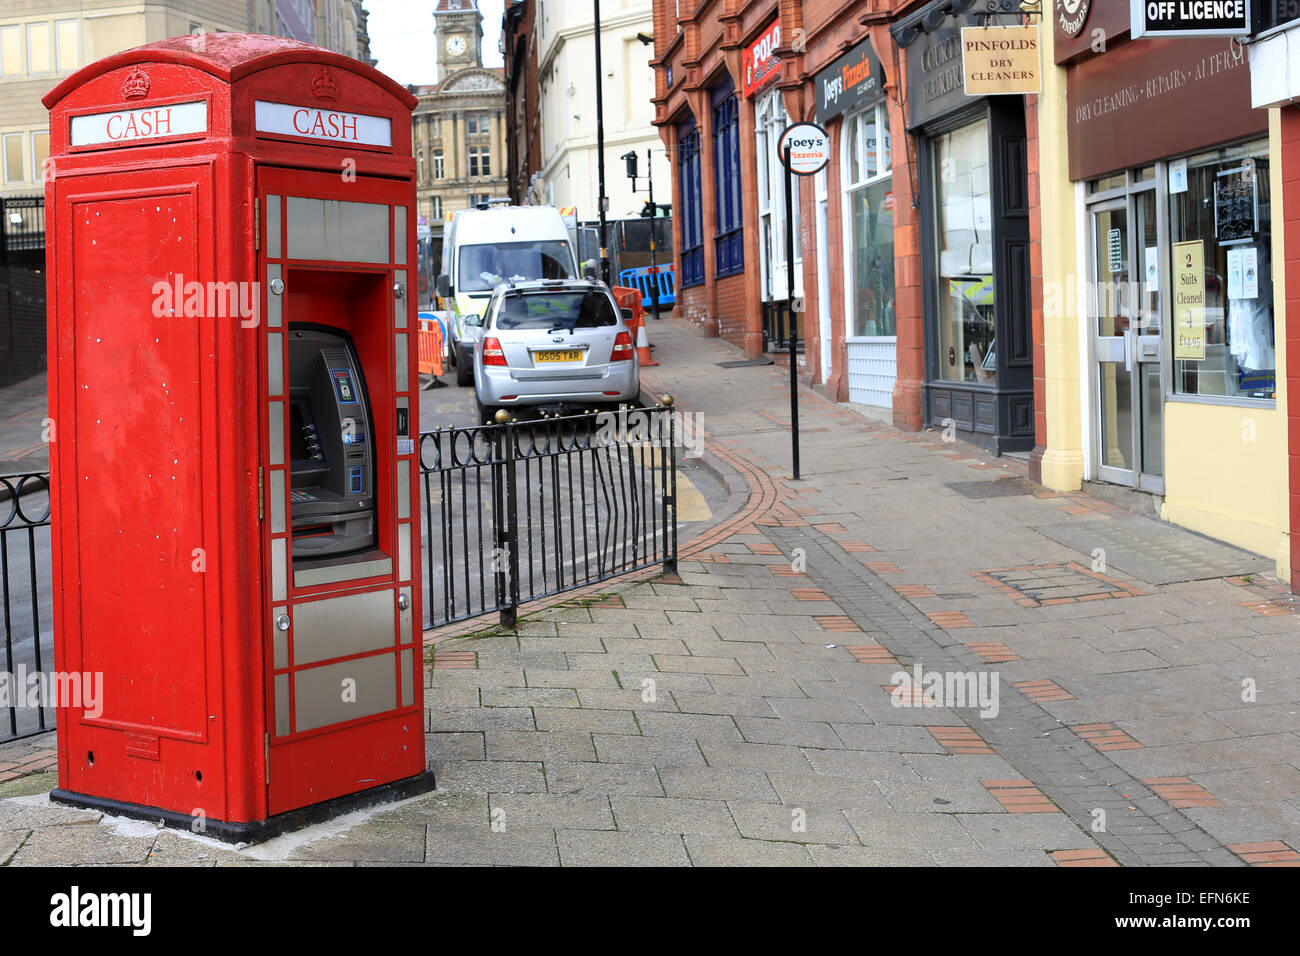 Cashpoint machine inside a red telephone box in Birmingham city centre. ATM cashpoint machine - Stock Image